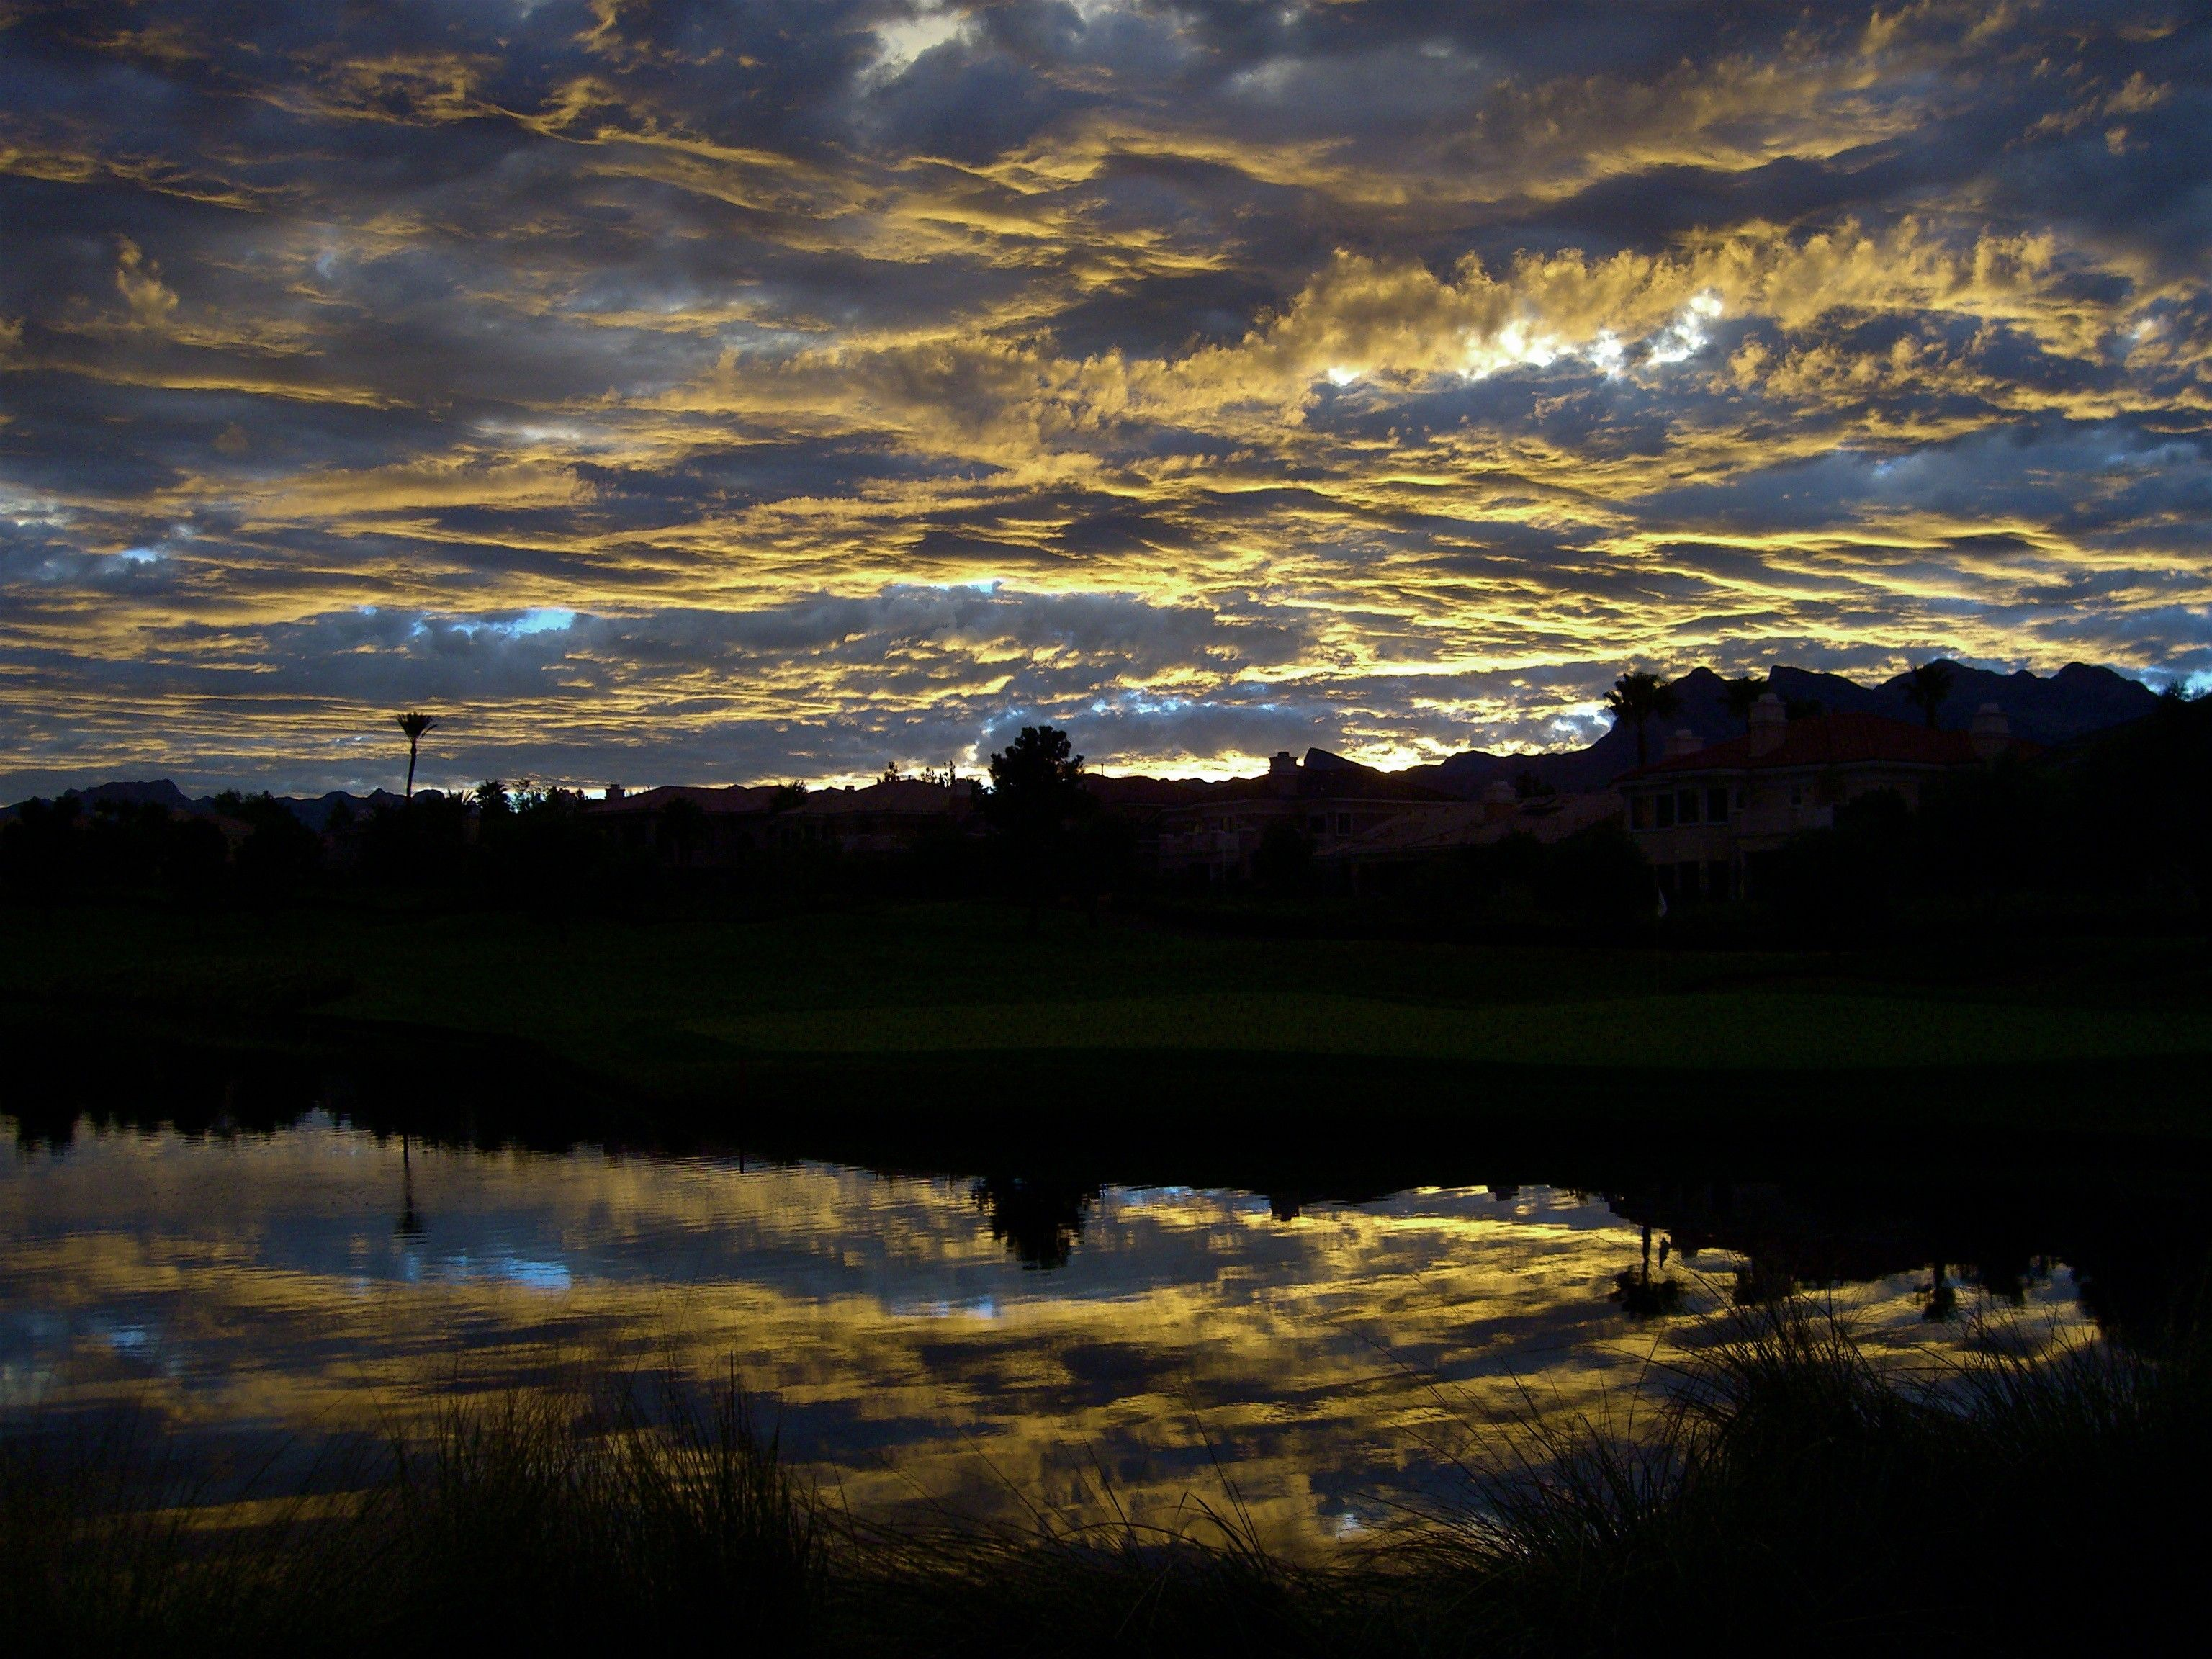 Clouds in the sky are reflected in a pond just after the sunset.